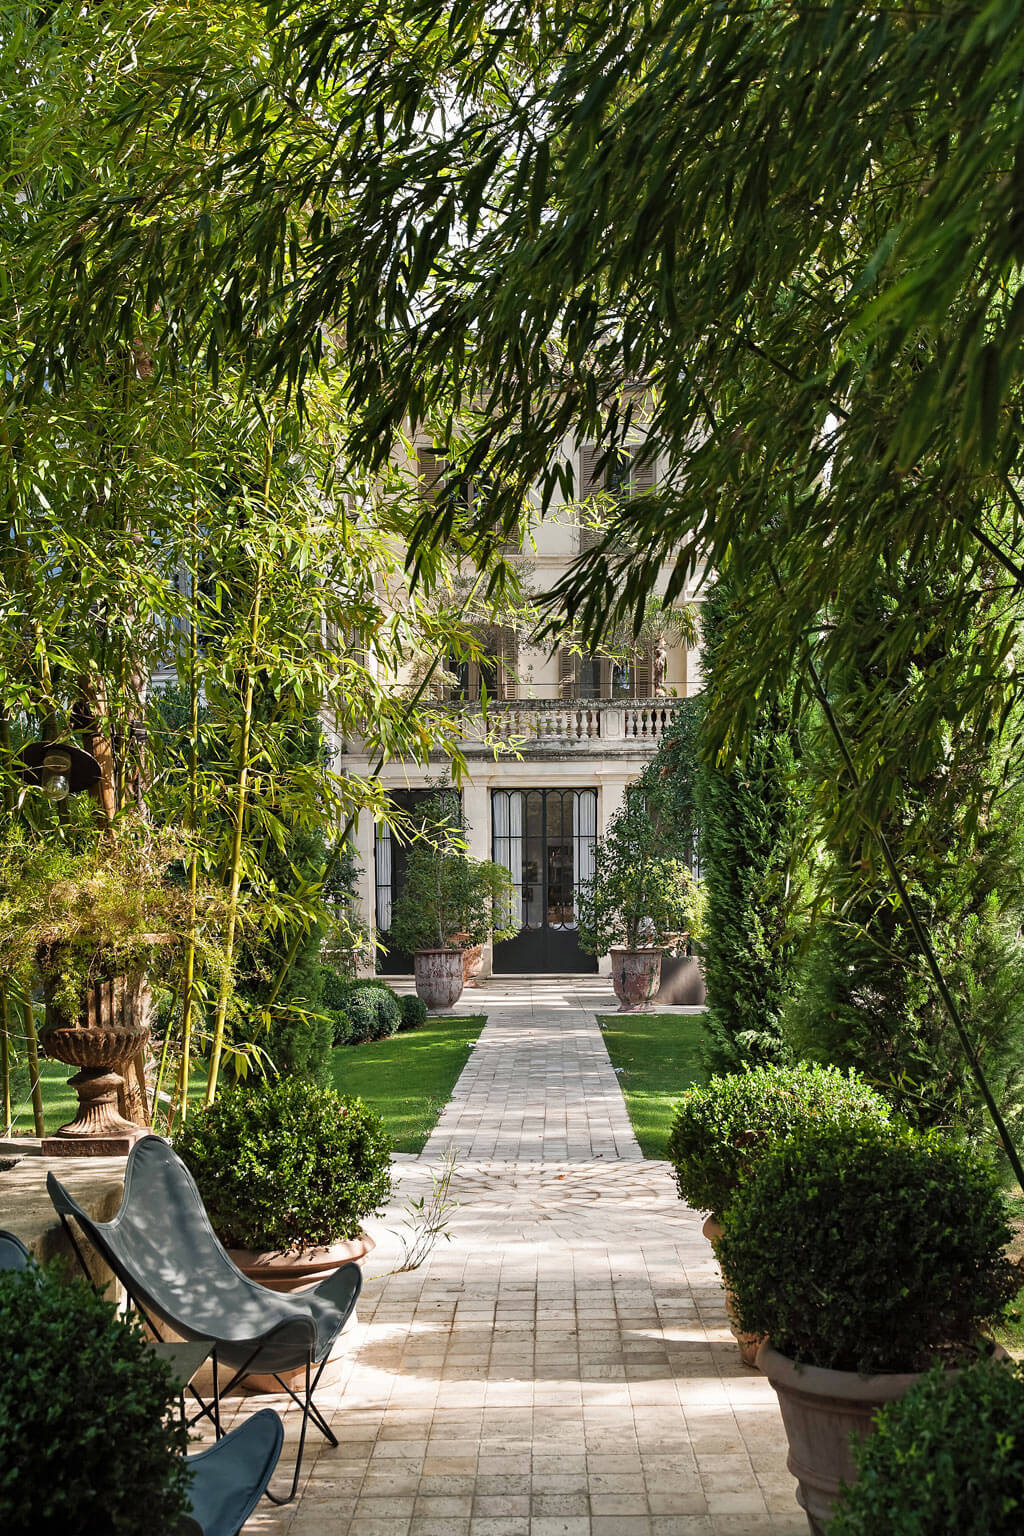 Beautiful French country garden inspiration from a luxurious property in the South of France. Breathtaking 19th century restored French chateau with largest private garden in Avignon. Avignon Hôtel Particulier. Photo: Haven In.